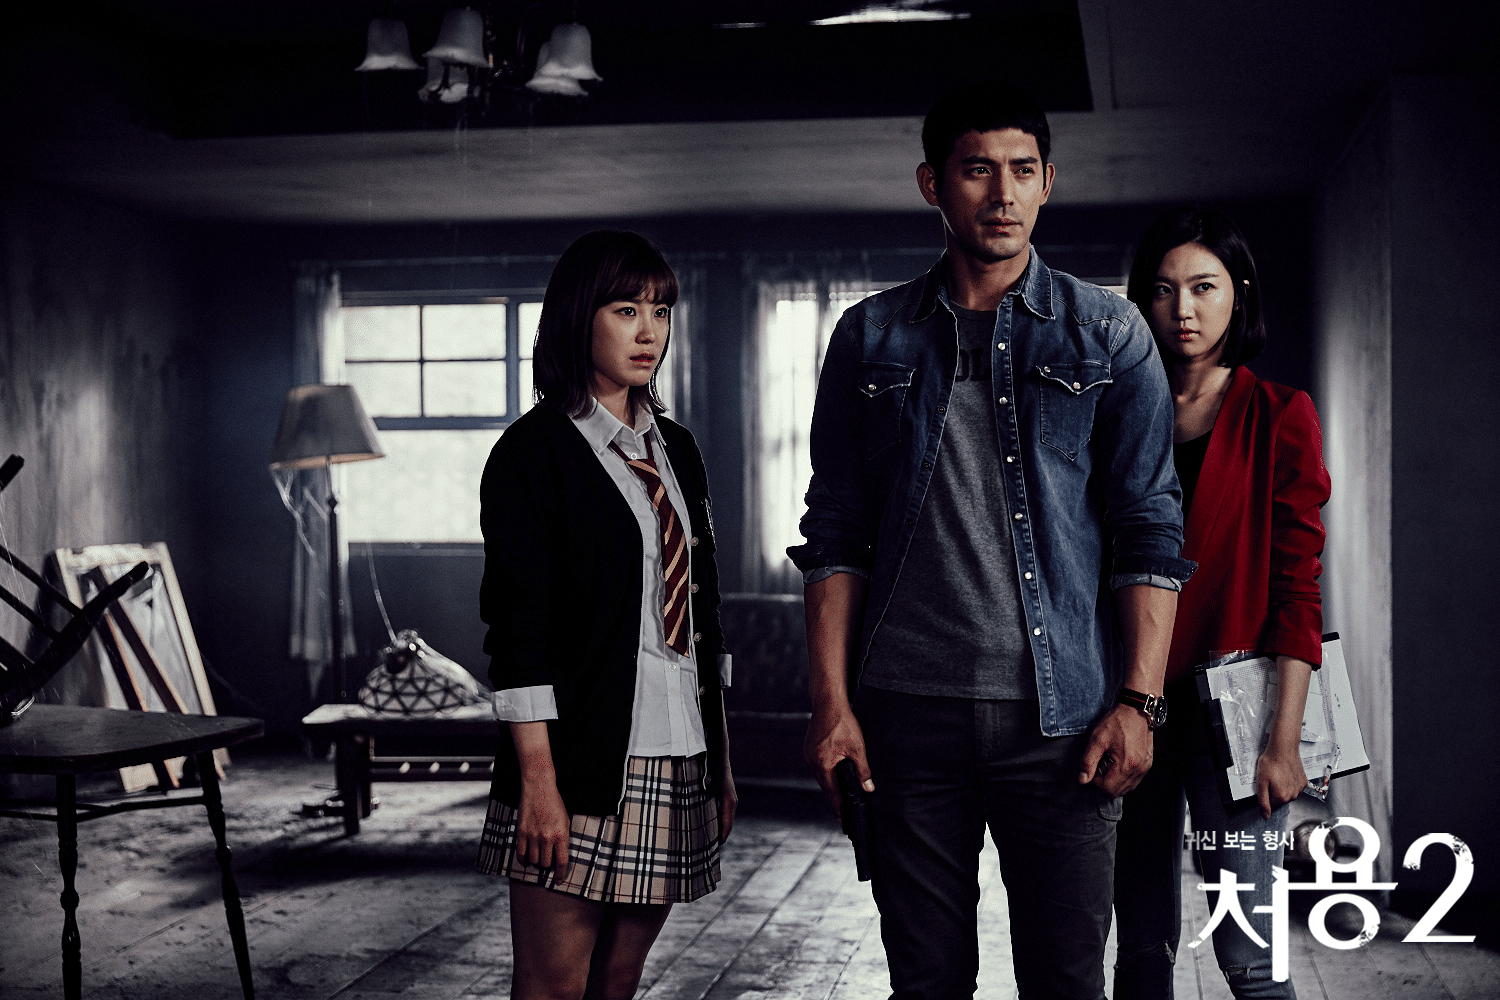 http://www.koreandrama.org/wp-content/uploads/2015/08/Cheo-Yong-2-8.png